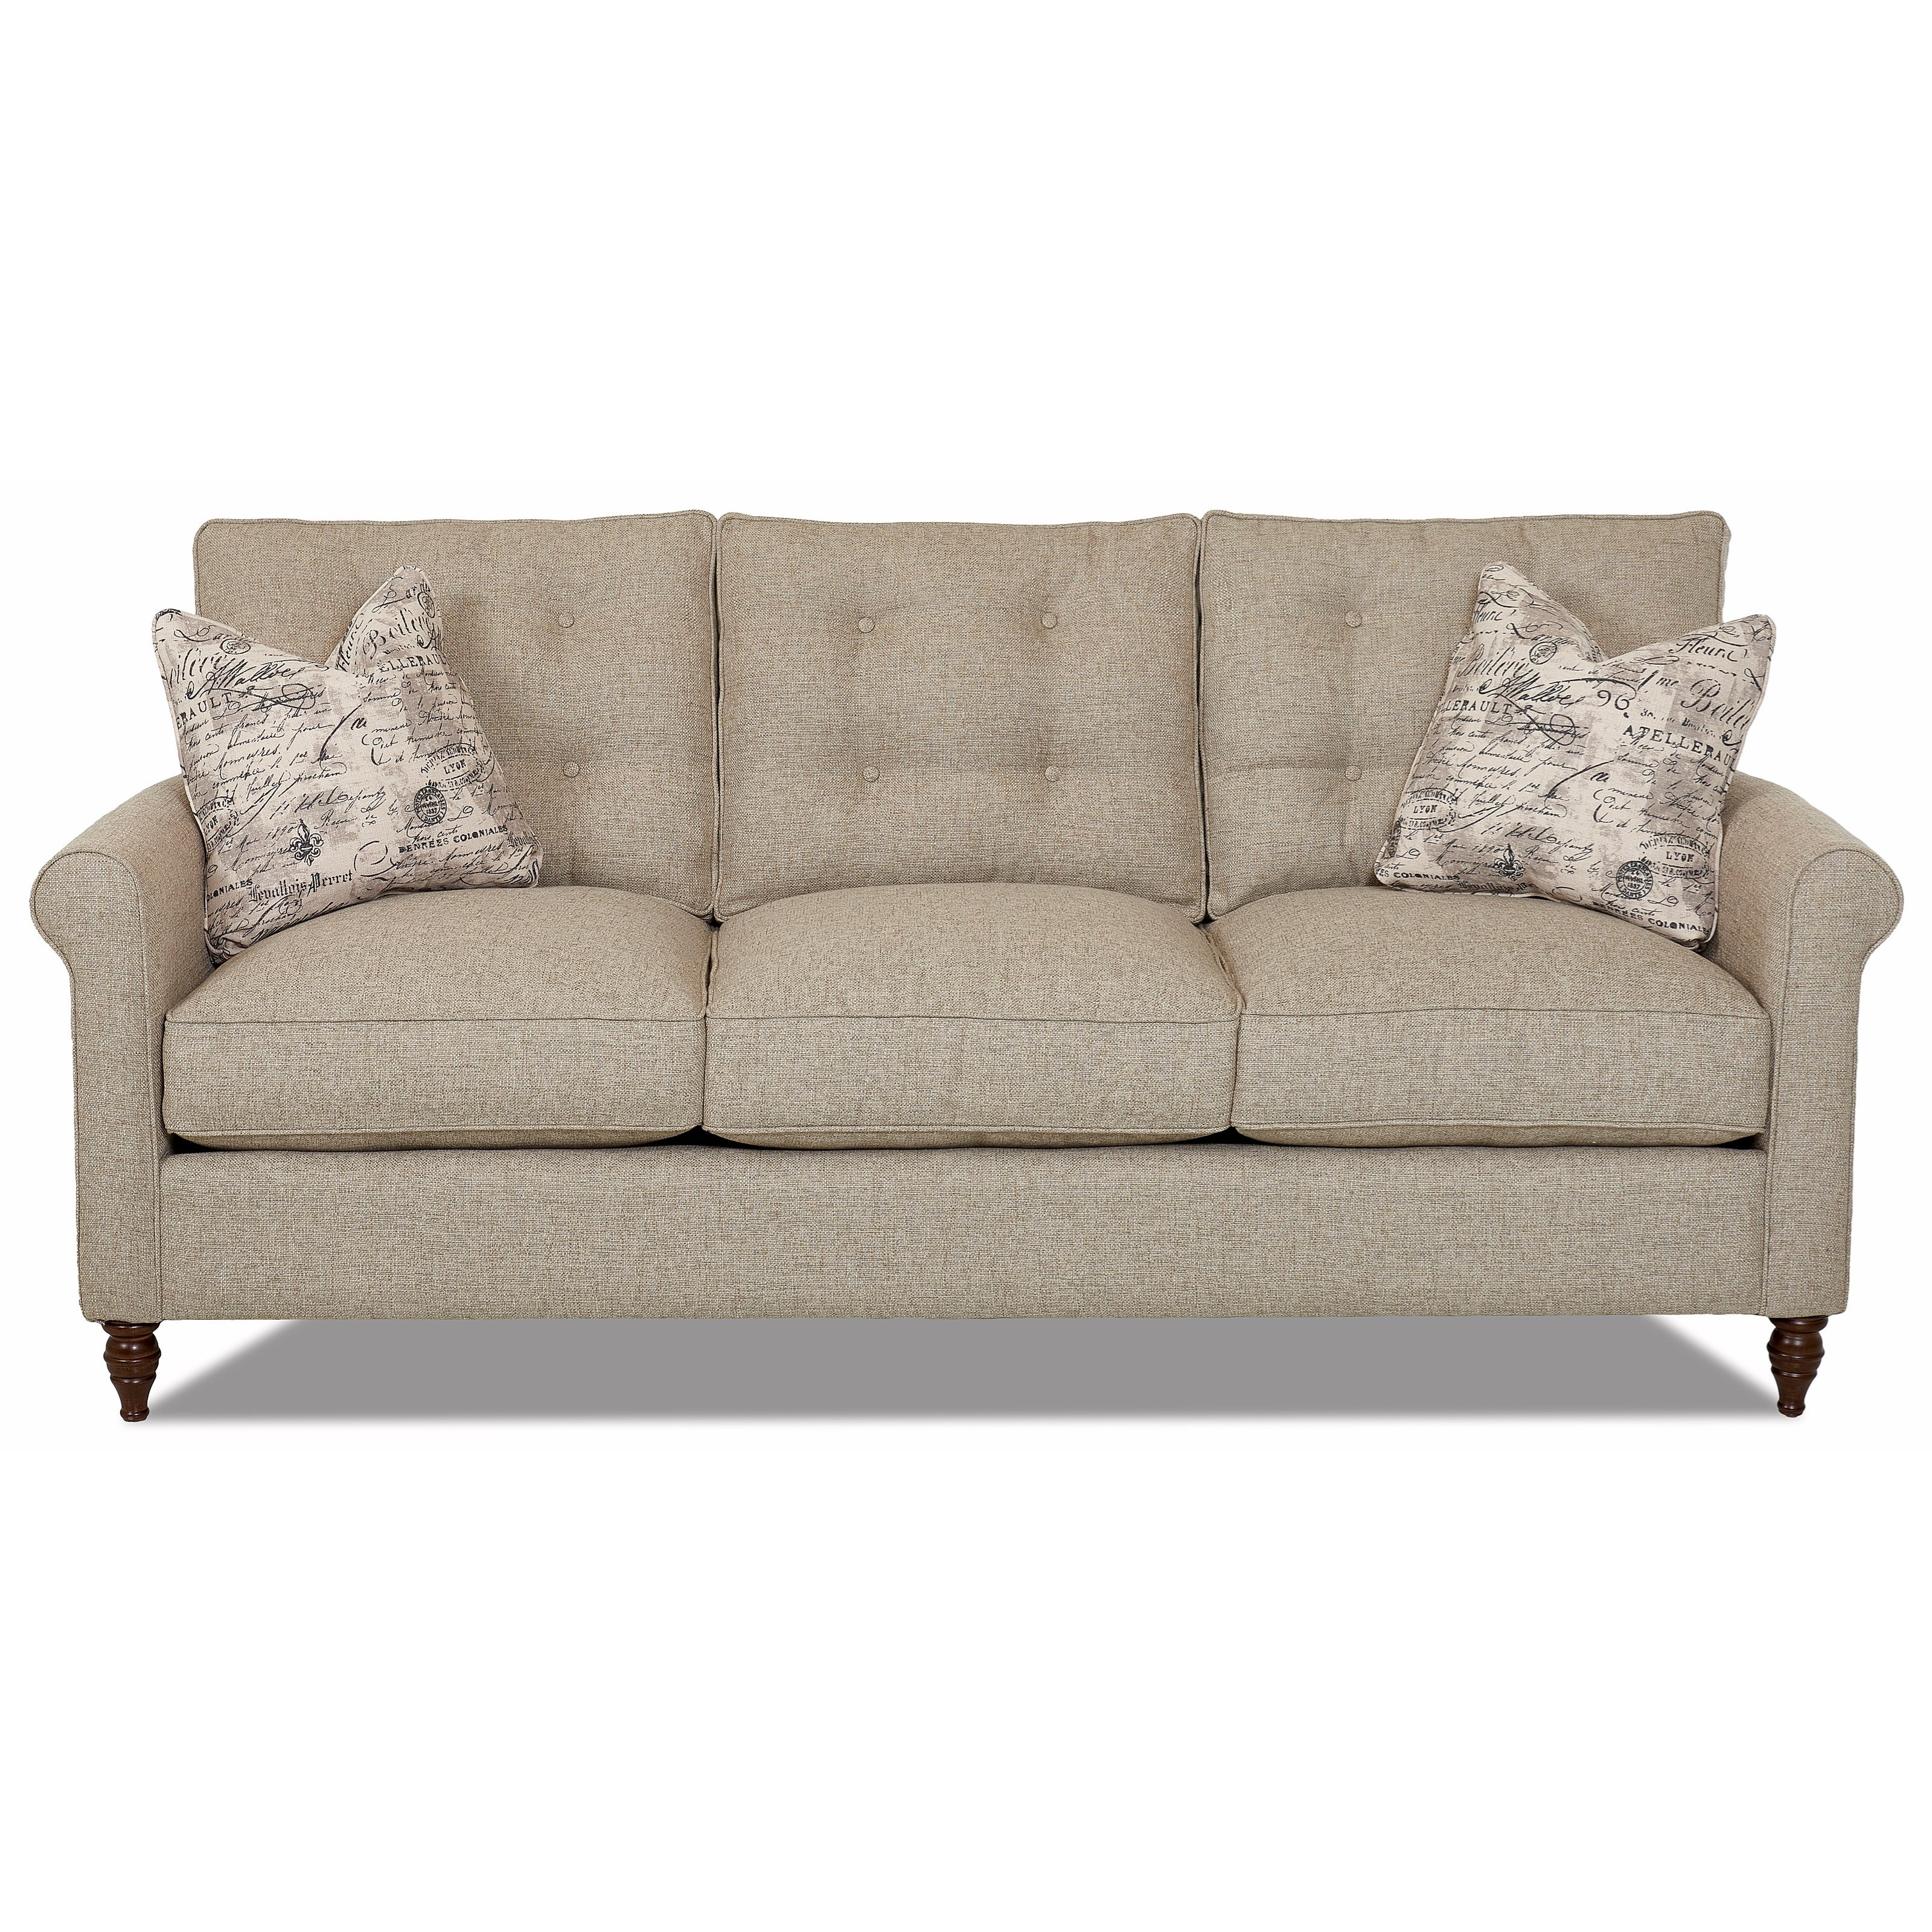 Holland Traditional Sofa with Button Tufted Back Cushions - Morris Home - Sofas